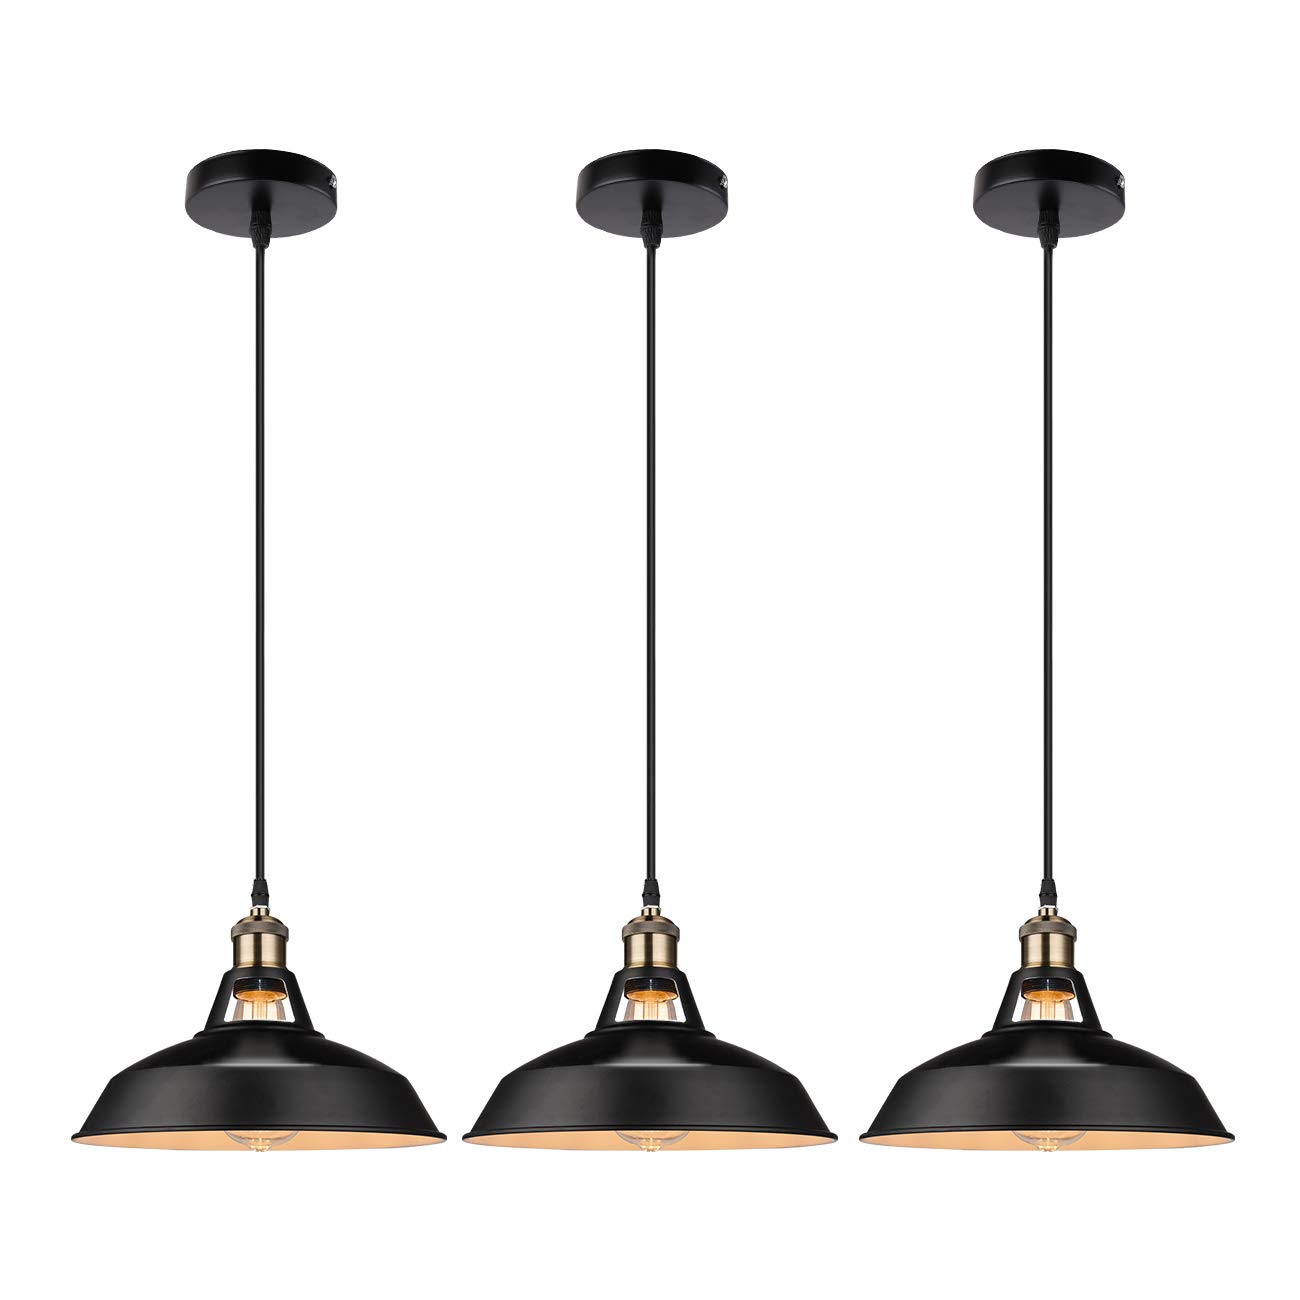 Galygg industrial retro pendant lighting outside black inside white metal shade ceiling hanging light fixtures 10 63 in diameter included led